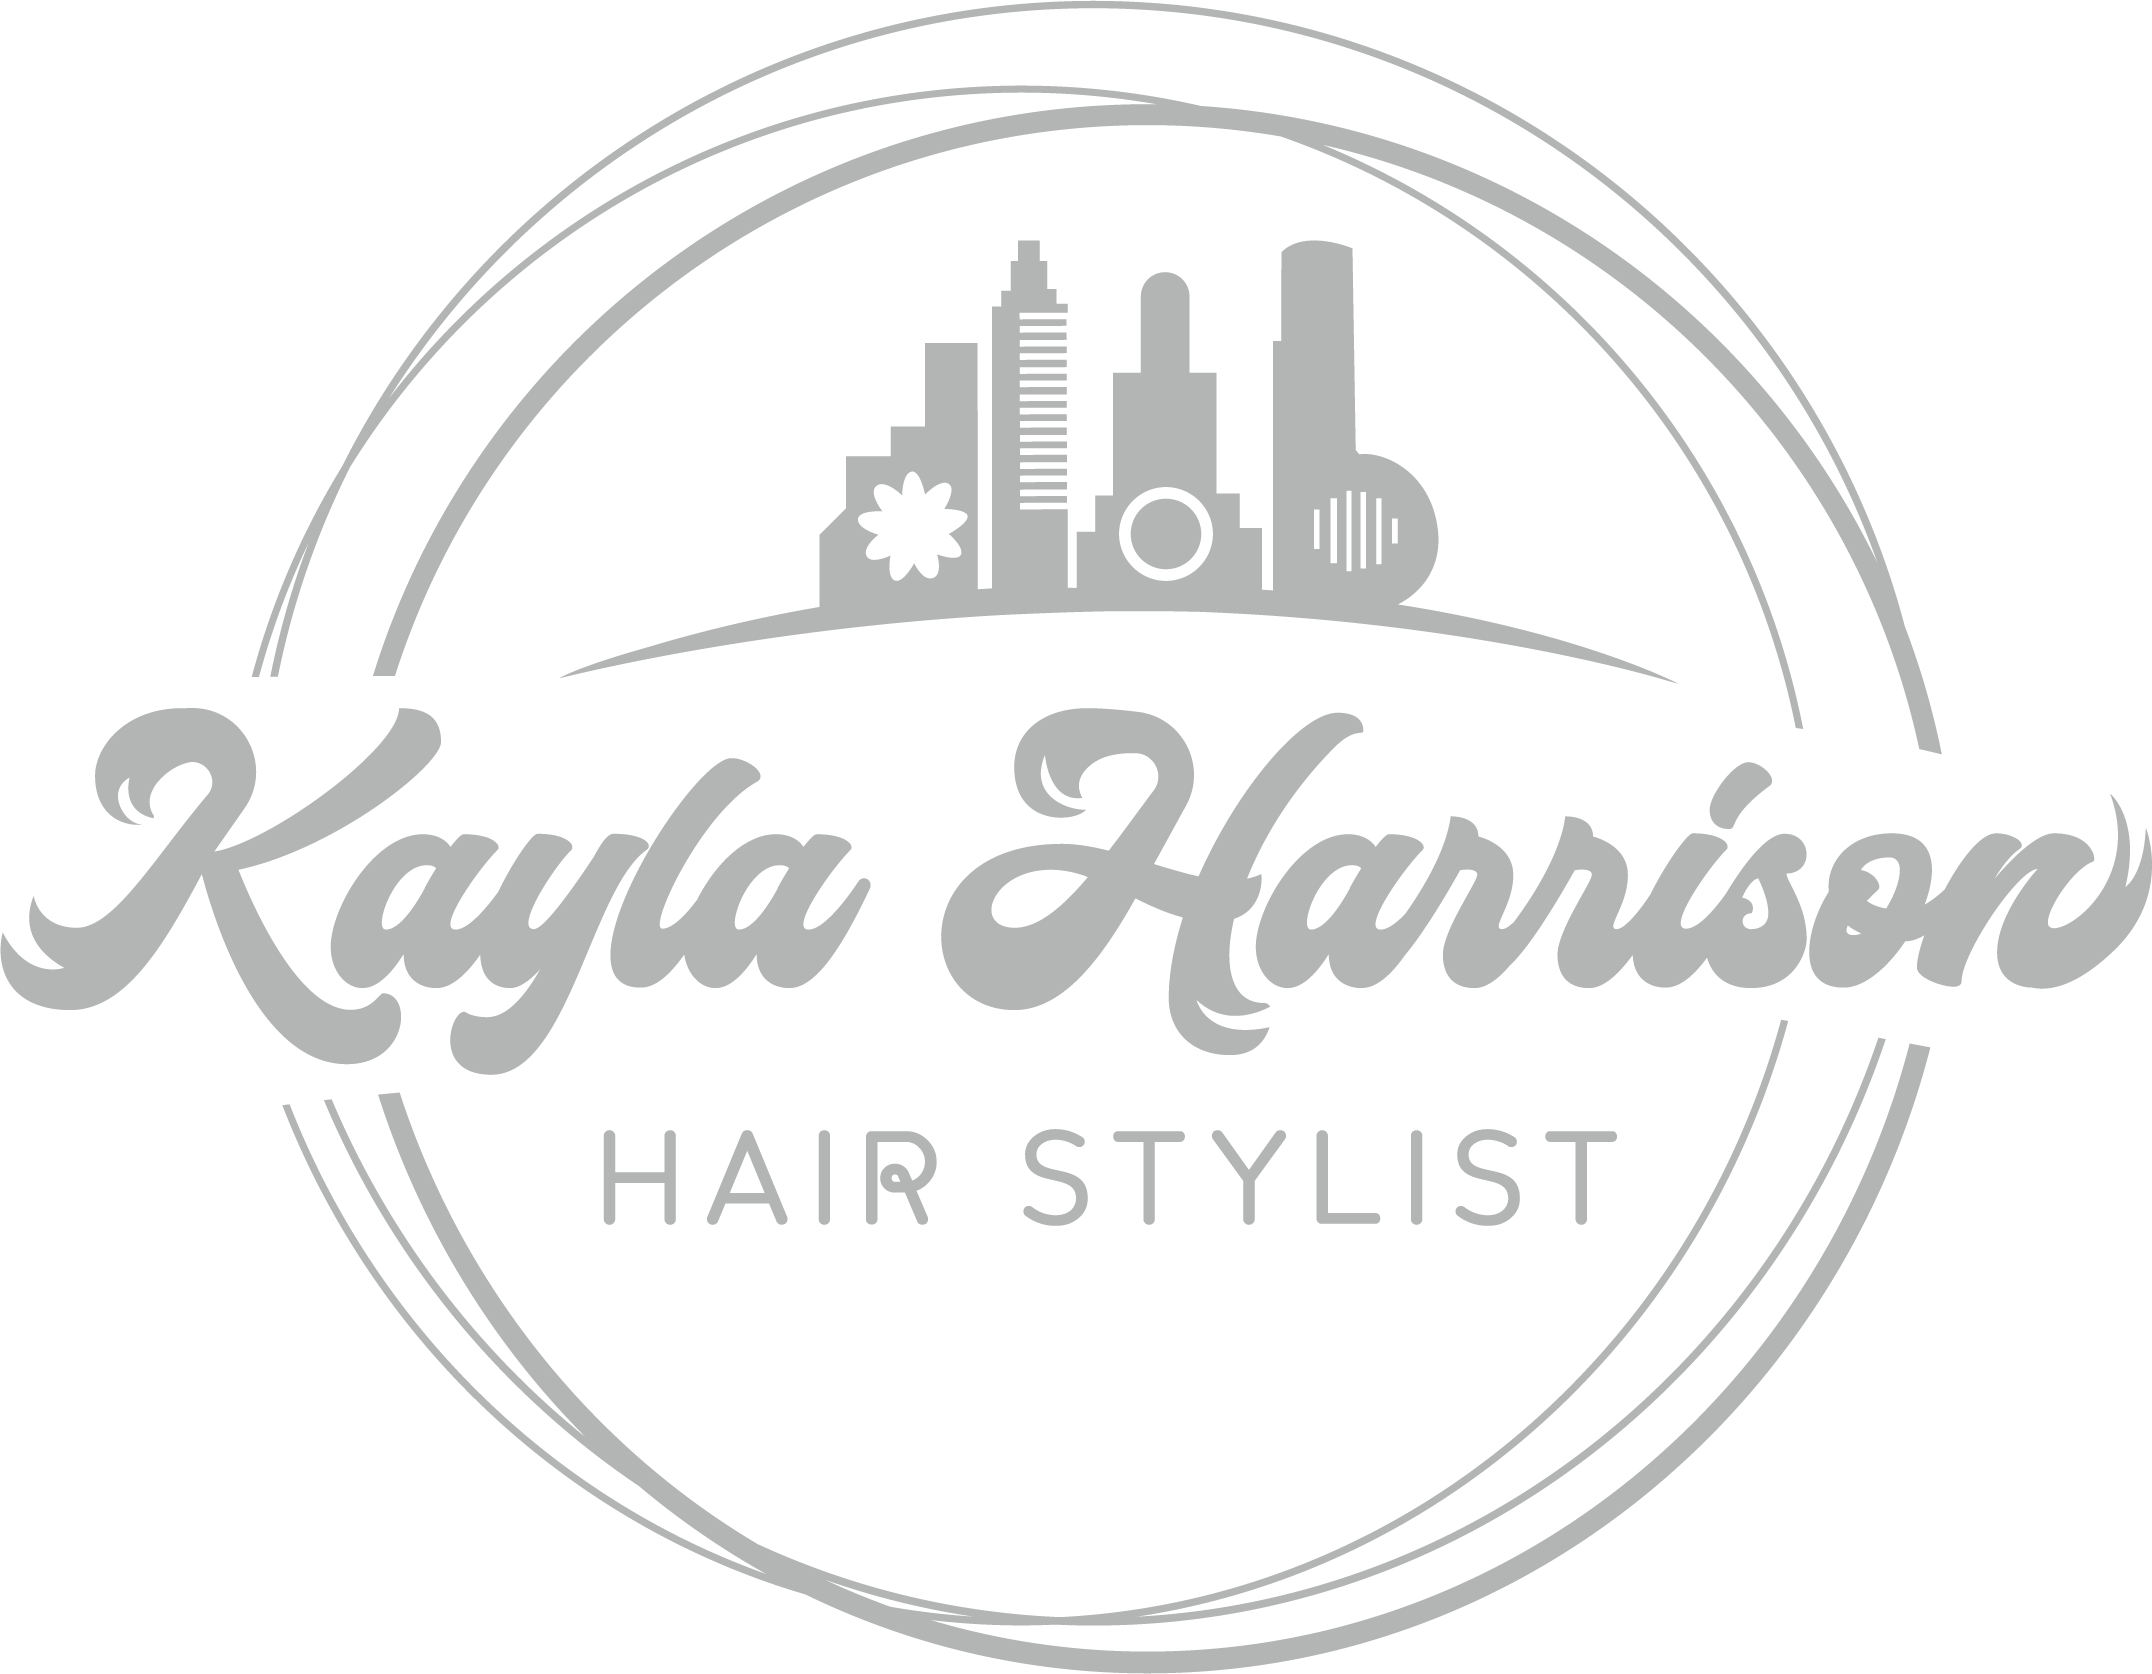 Funky Hair Stylist logo for the Live Music capital of the world